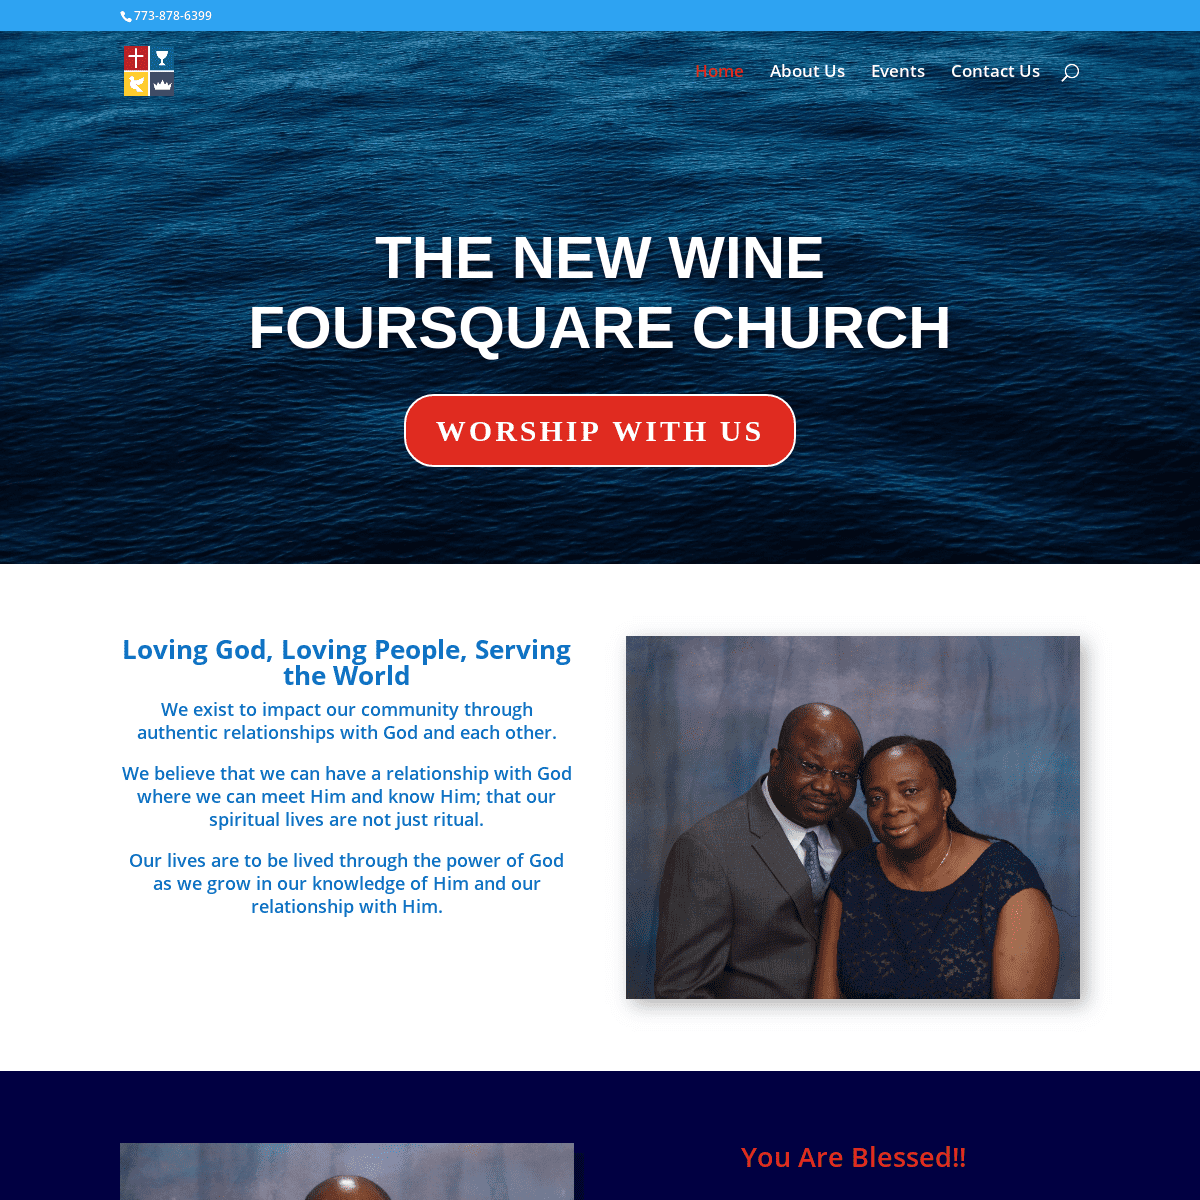 ArchiveBay.com - newwinefoursquare.org - The New Wine Foursquare Church - With God everything is possible.